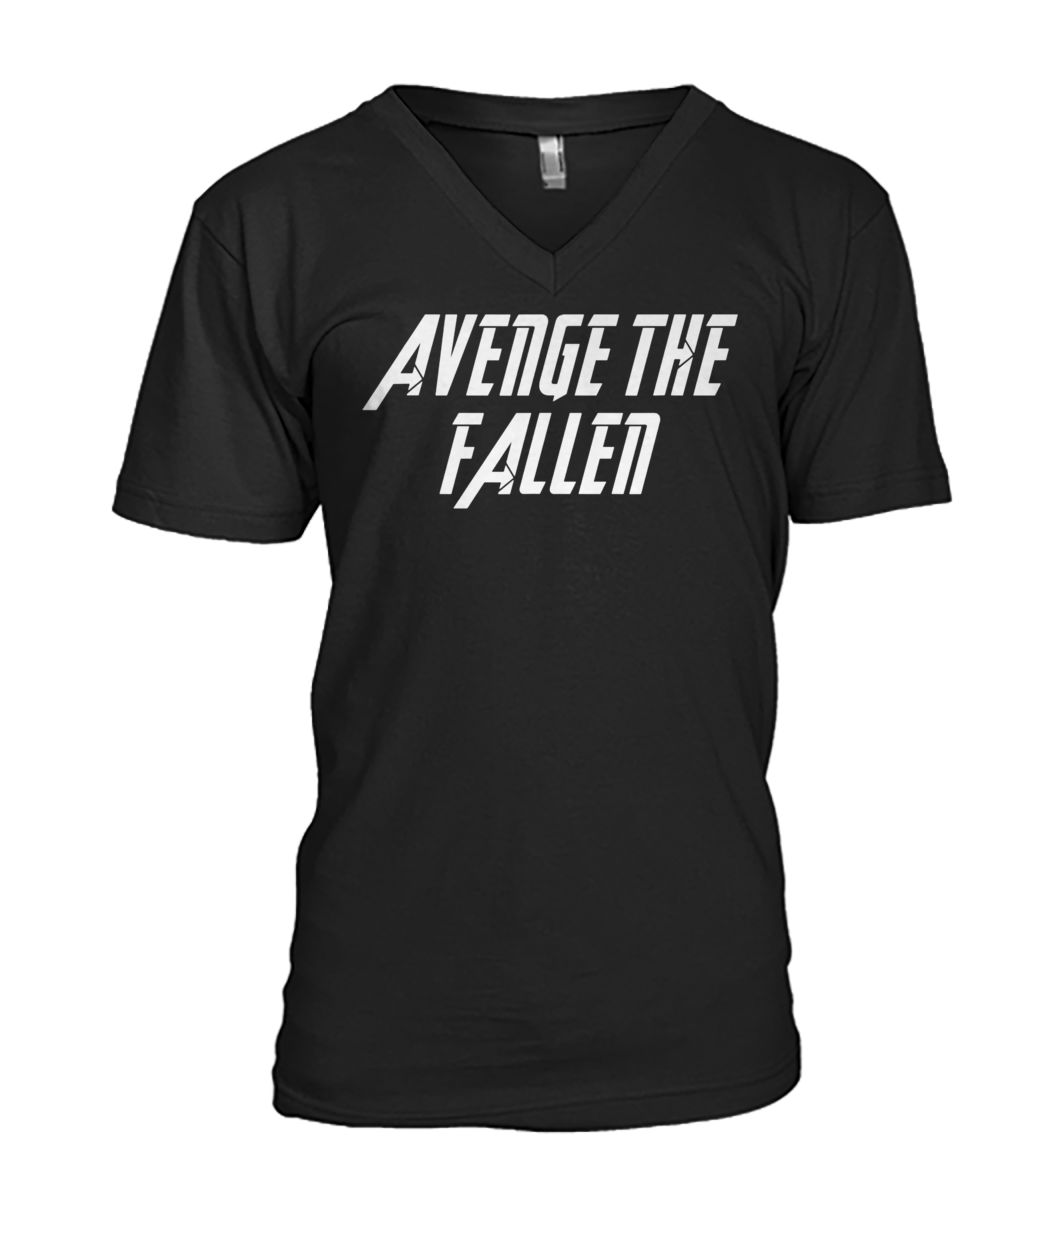 Avengers endgame avenge the fallen mens v-neck